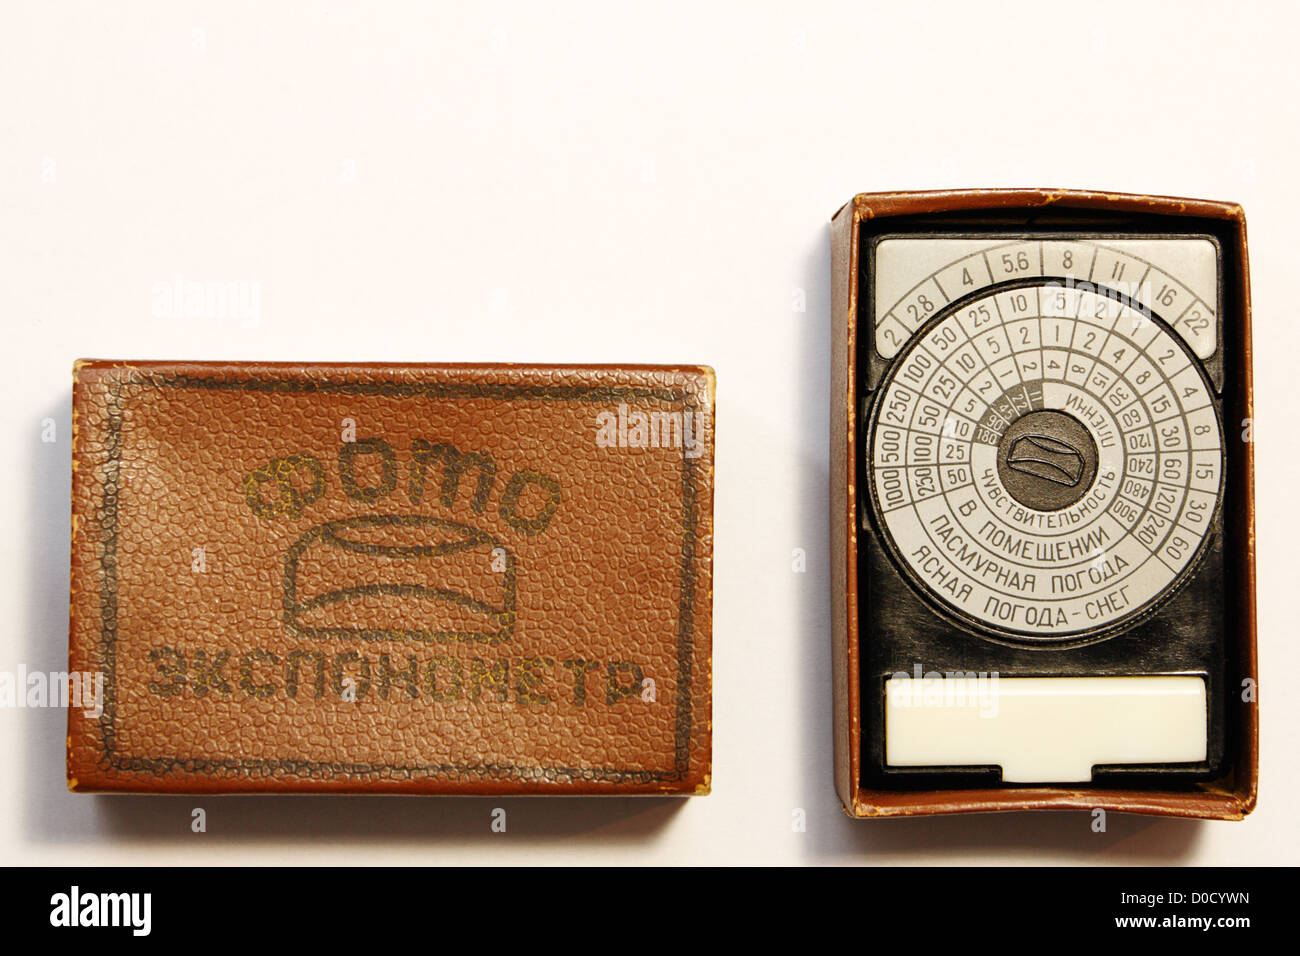 Old photographic exposure meter from USSR in case - Stock Image